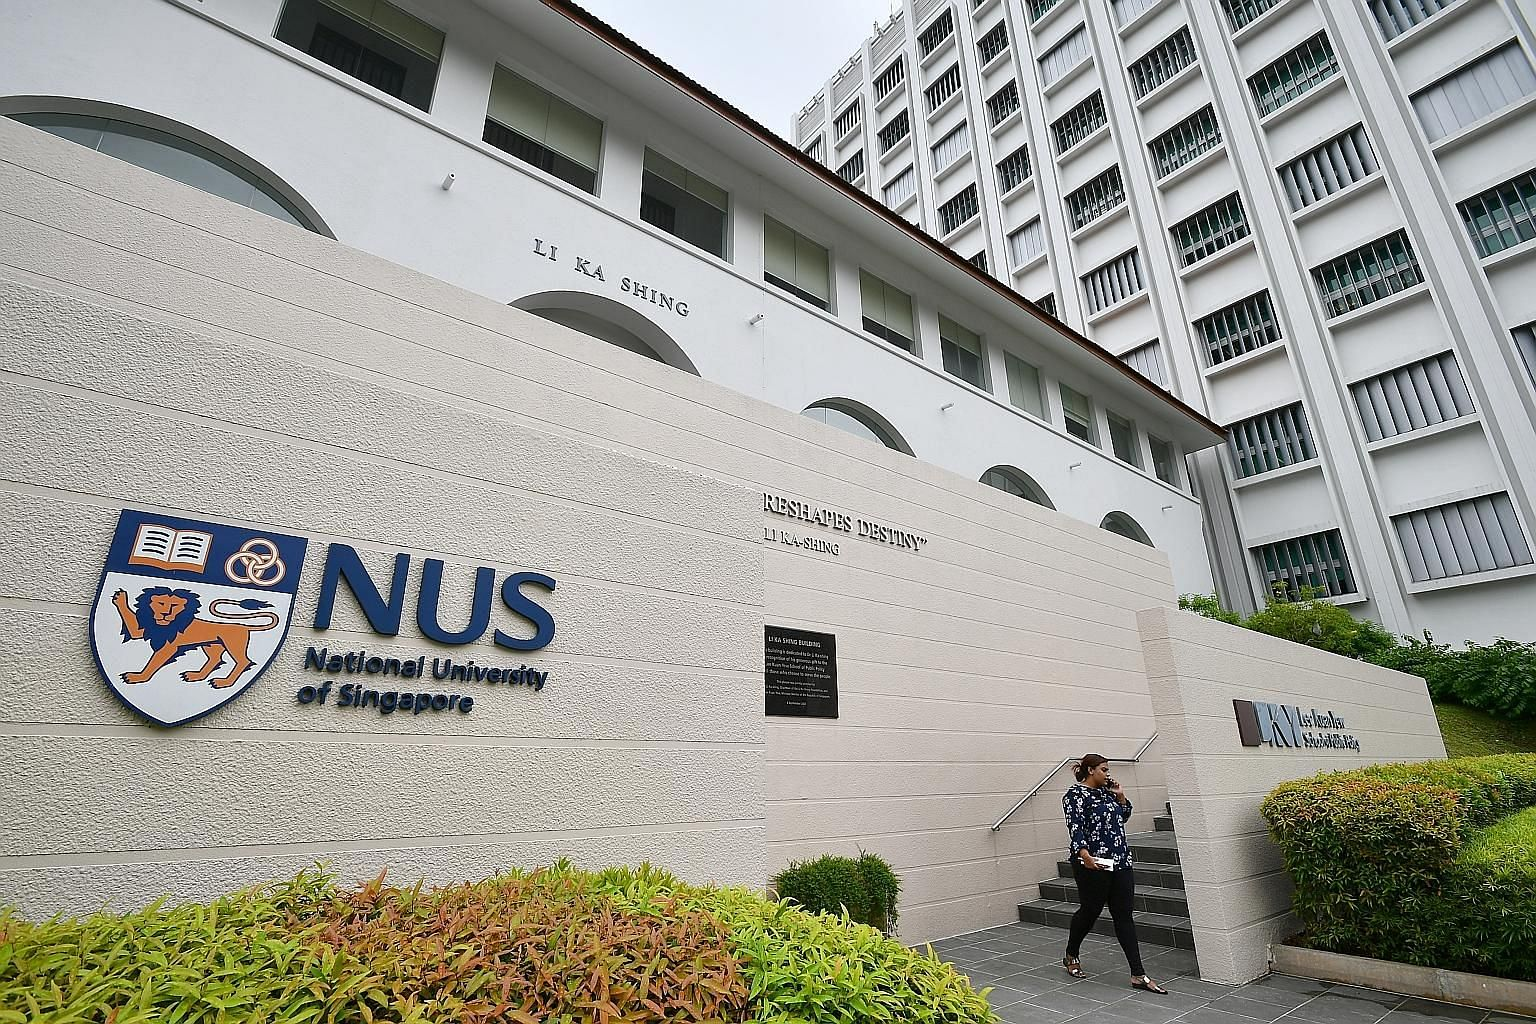 Bukit Timah Campus is deeply ingrained in Singapore's socio-political history, having housed many national institutes of higher learning over its 88-year history. The campus went from being Raffles College in 1929, to University of Malaya in 1962 - a